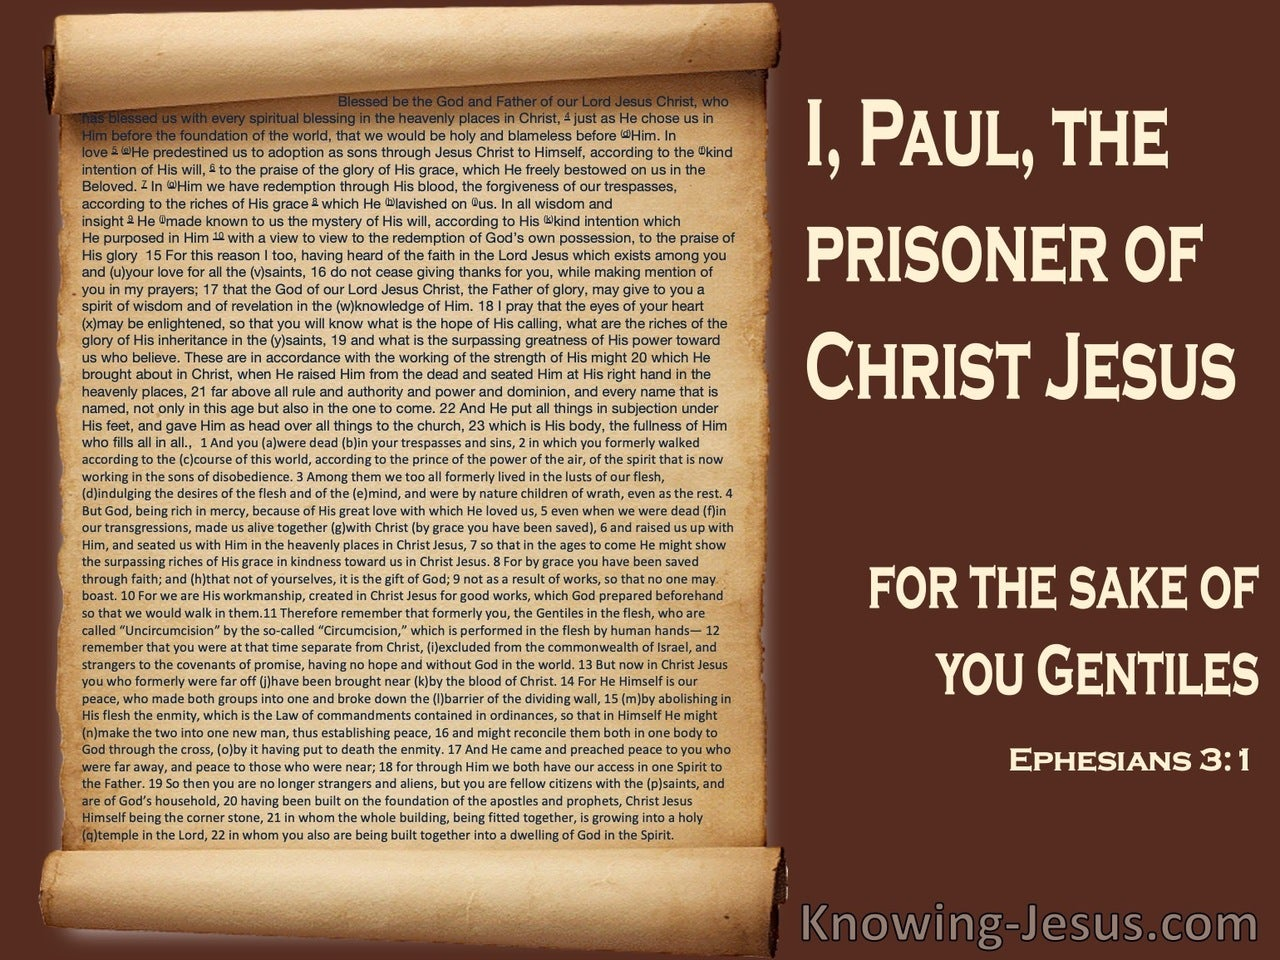 Ephesians 3:1 Paul, The Prisoner Of Christ Jesus  (brown)